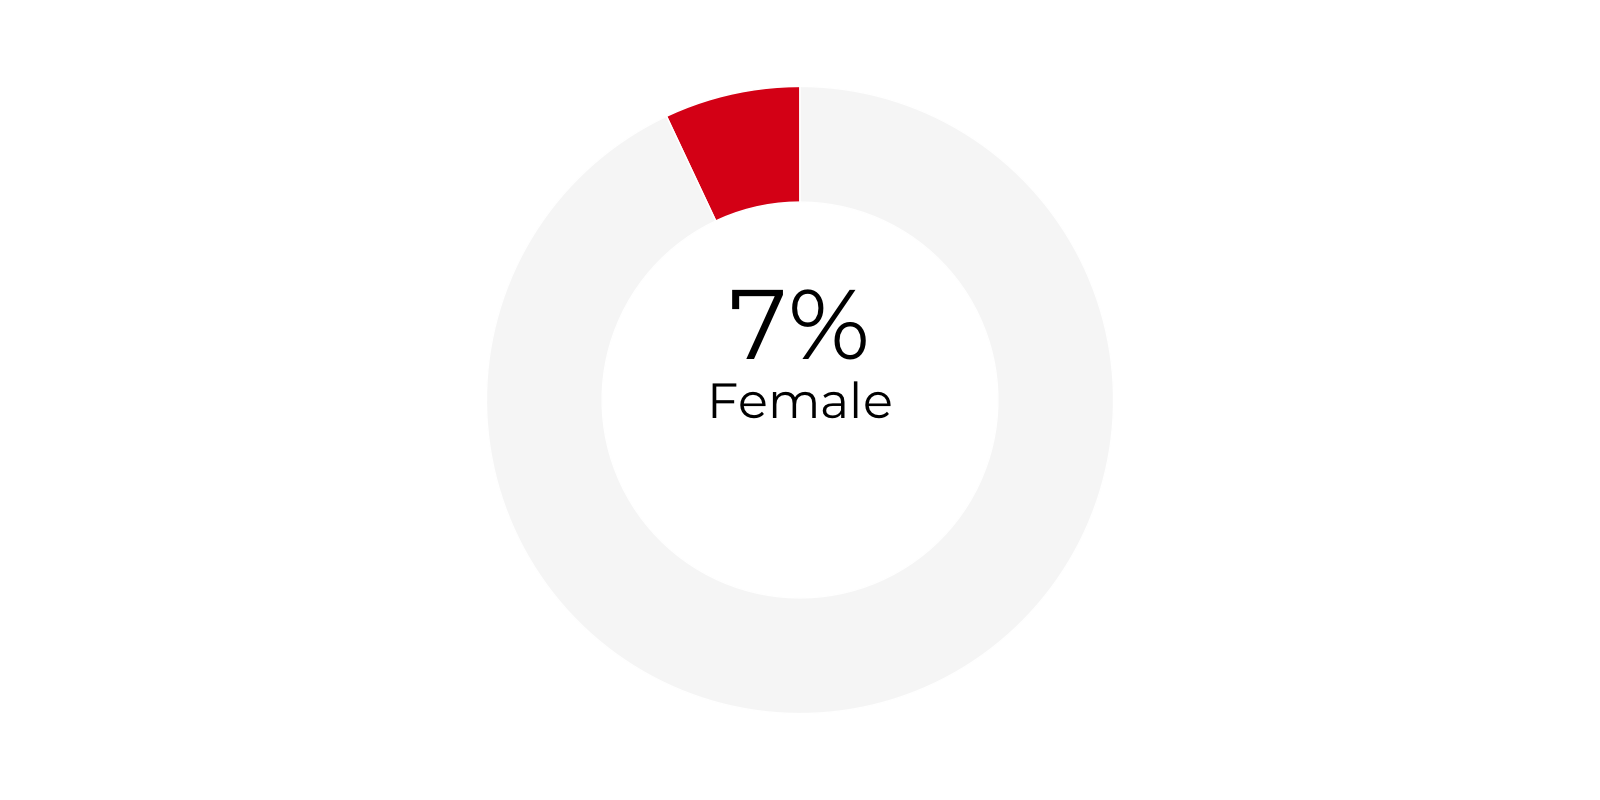 Graph about Women serving in the White House COVID-19 Taskforce. More detailed text description below.